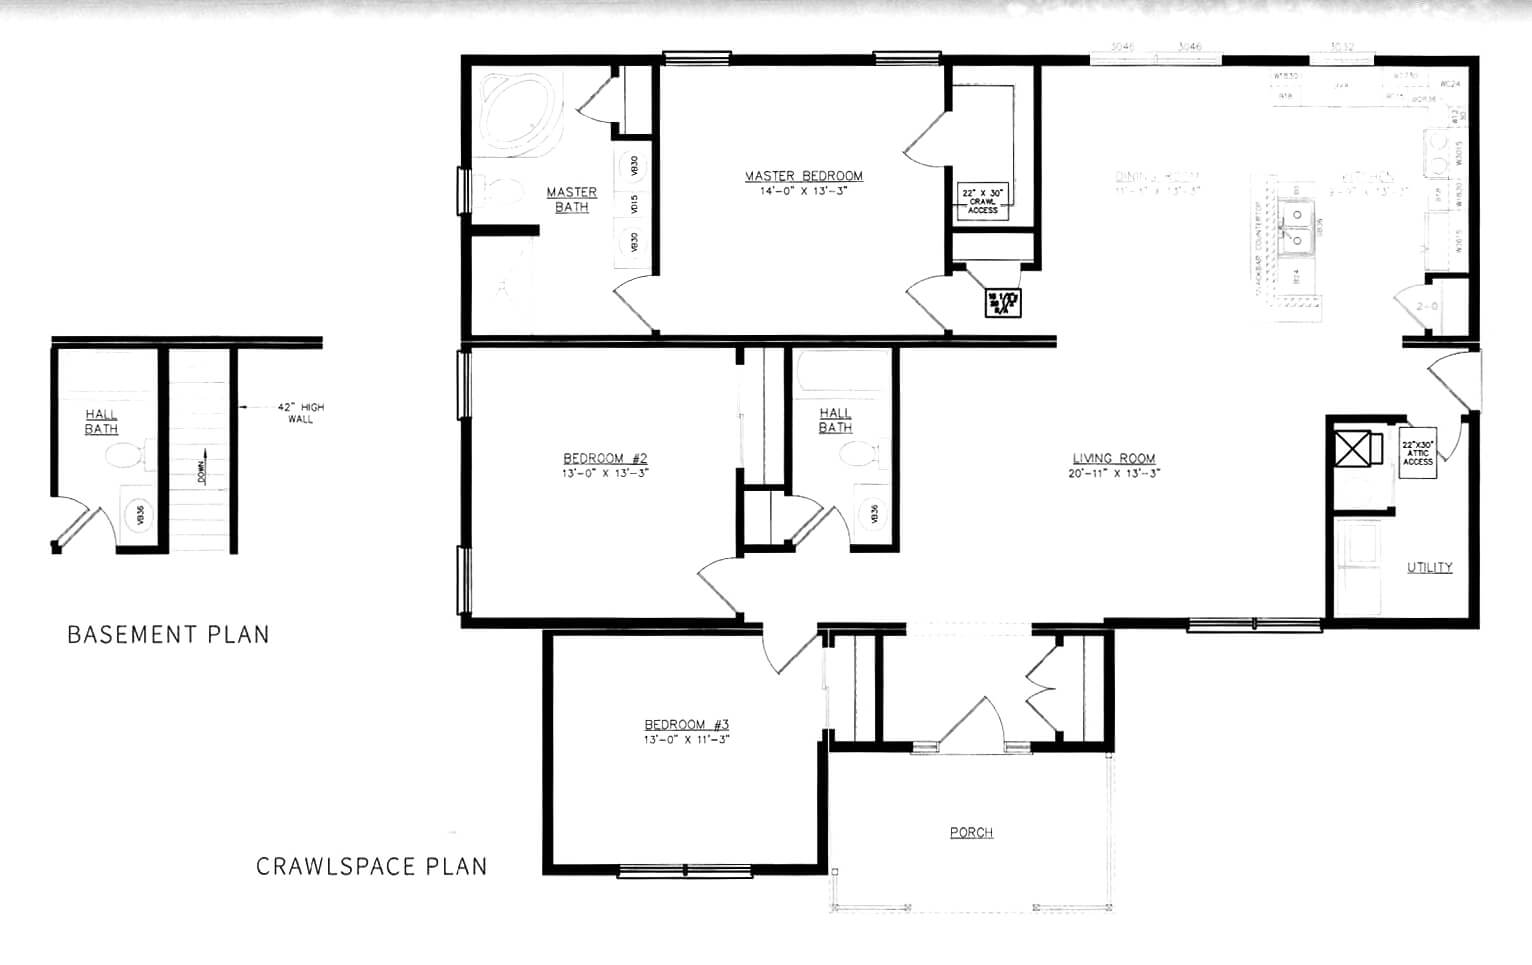 GS Courtyard Homes - Completed Projects - The Westwood Floor Plan